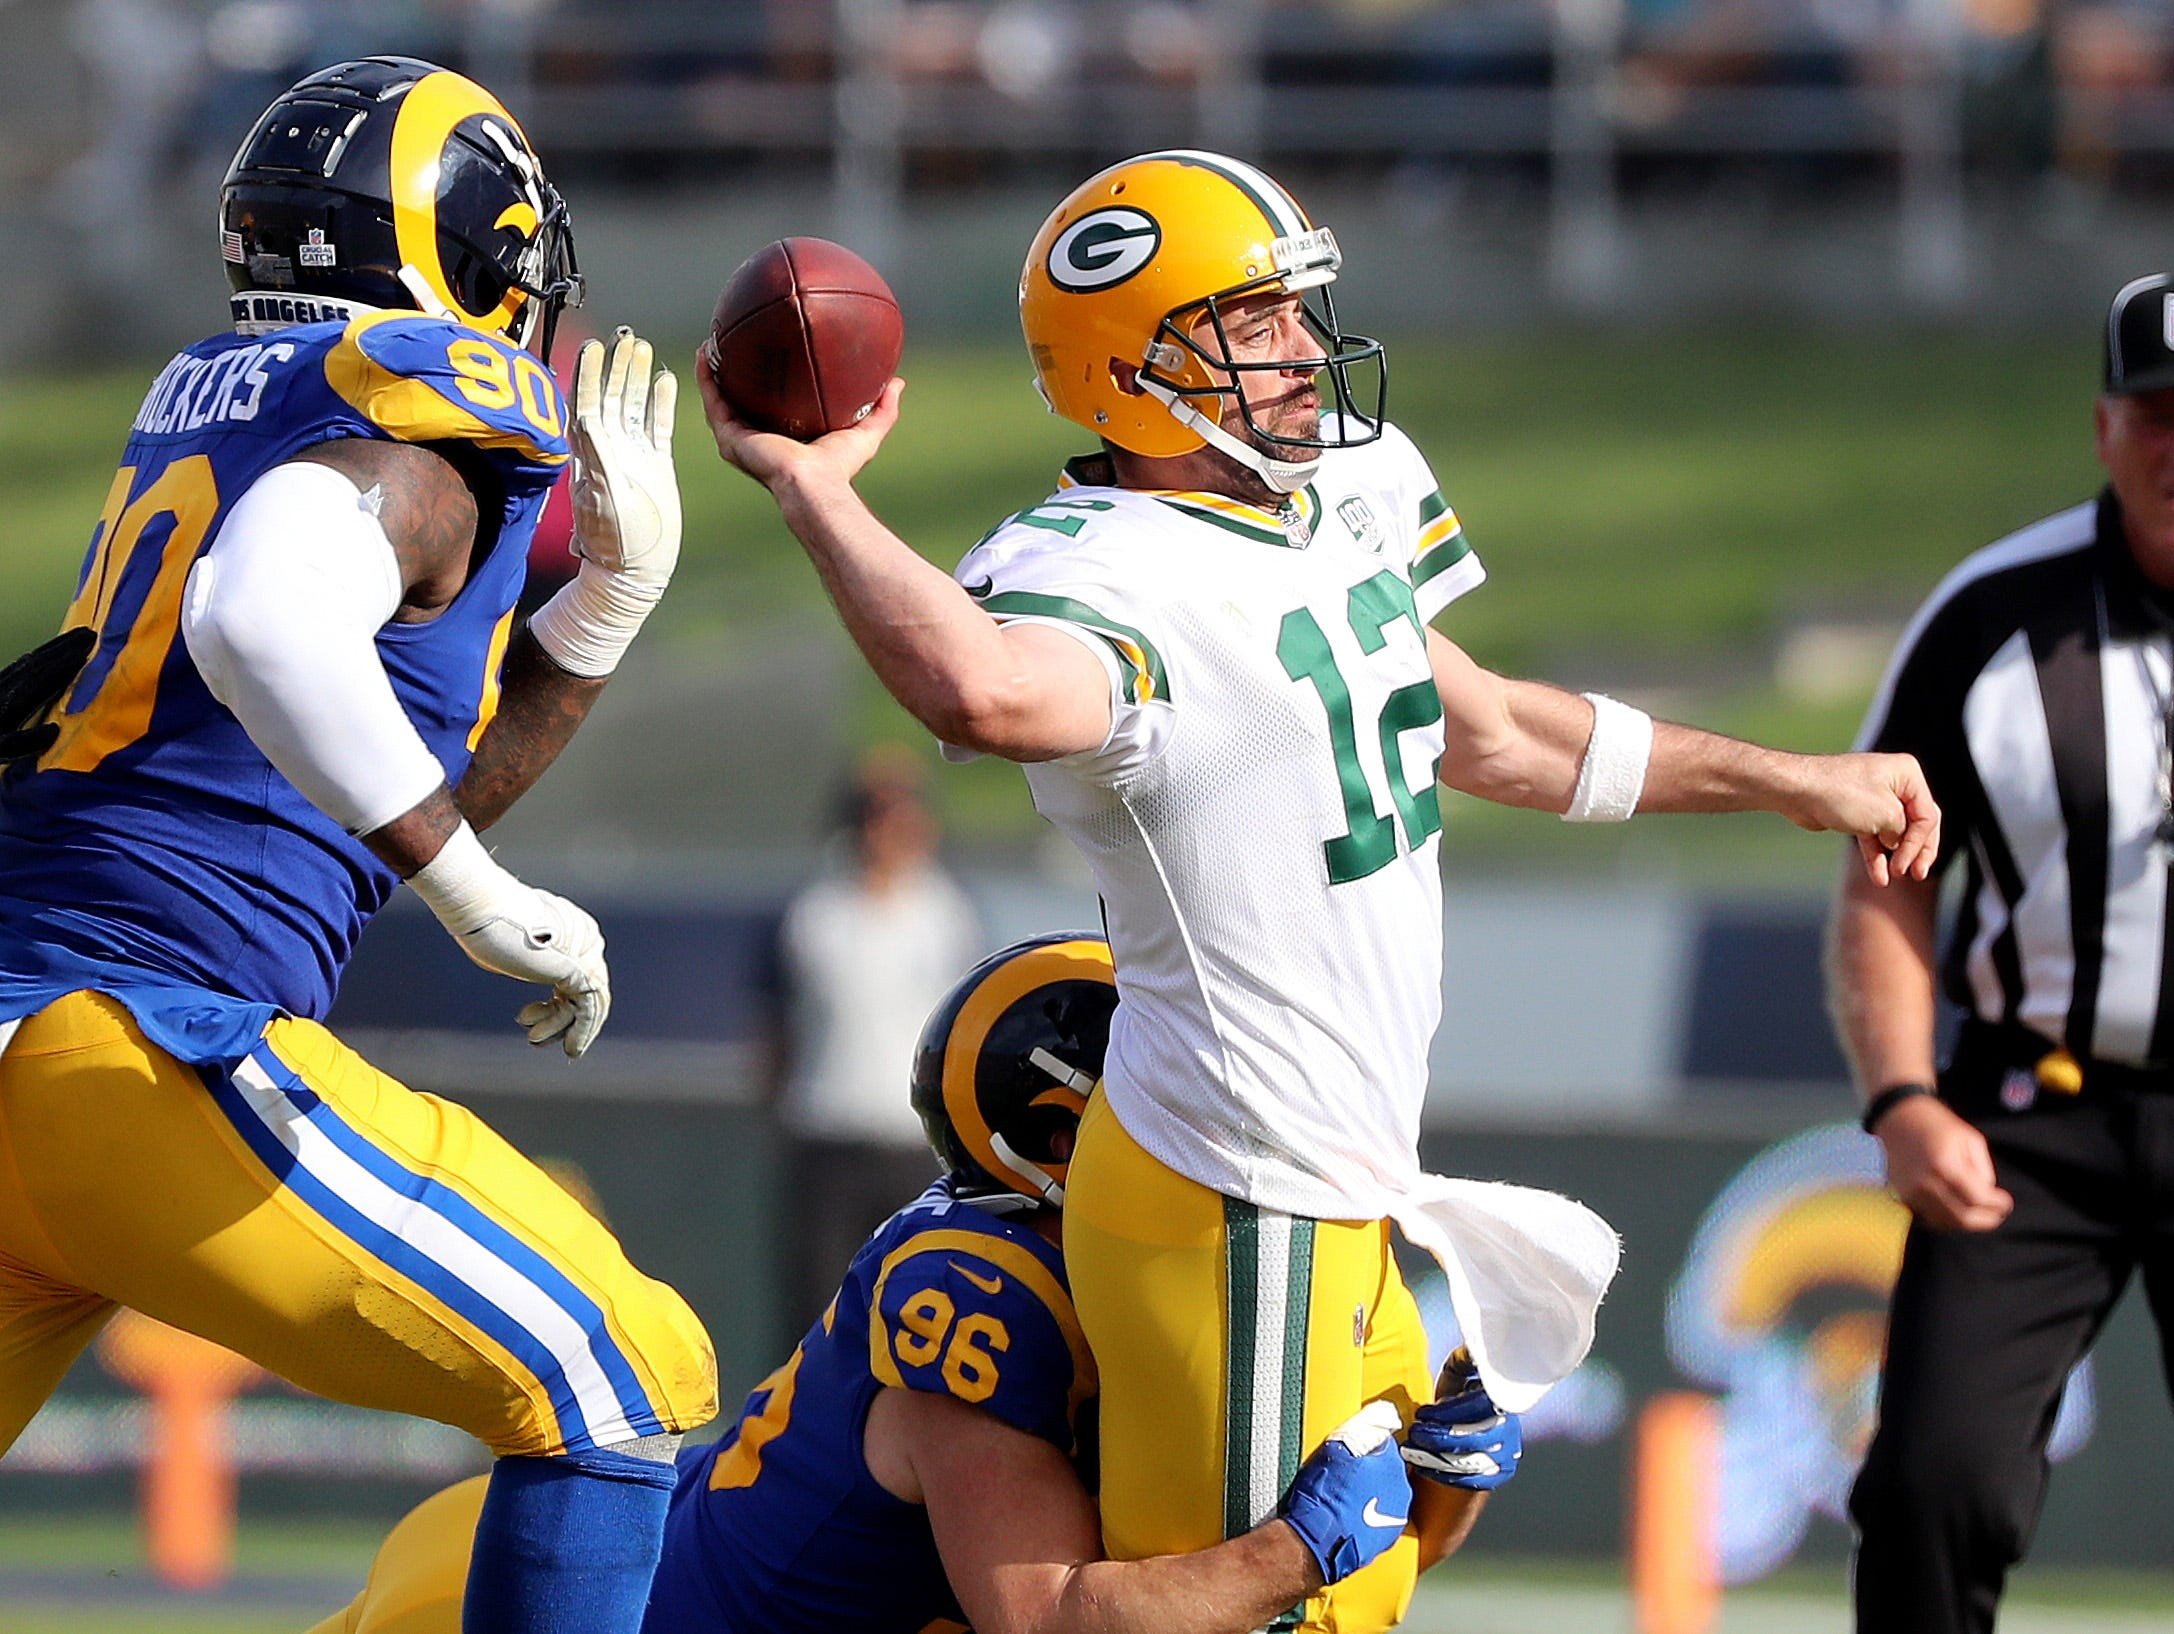 Green Bay Packers cornerback Jaire Alexander (23) throws as he is tackled by linebacker Matt Longacre (96) against the LA Rams Sunday, October 28, 2018 at the Memorial Coliseum in Los Angeles.